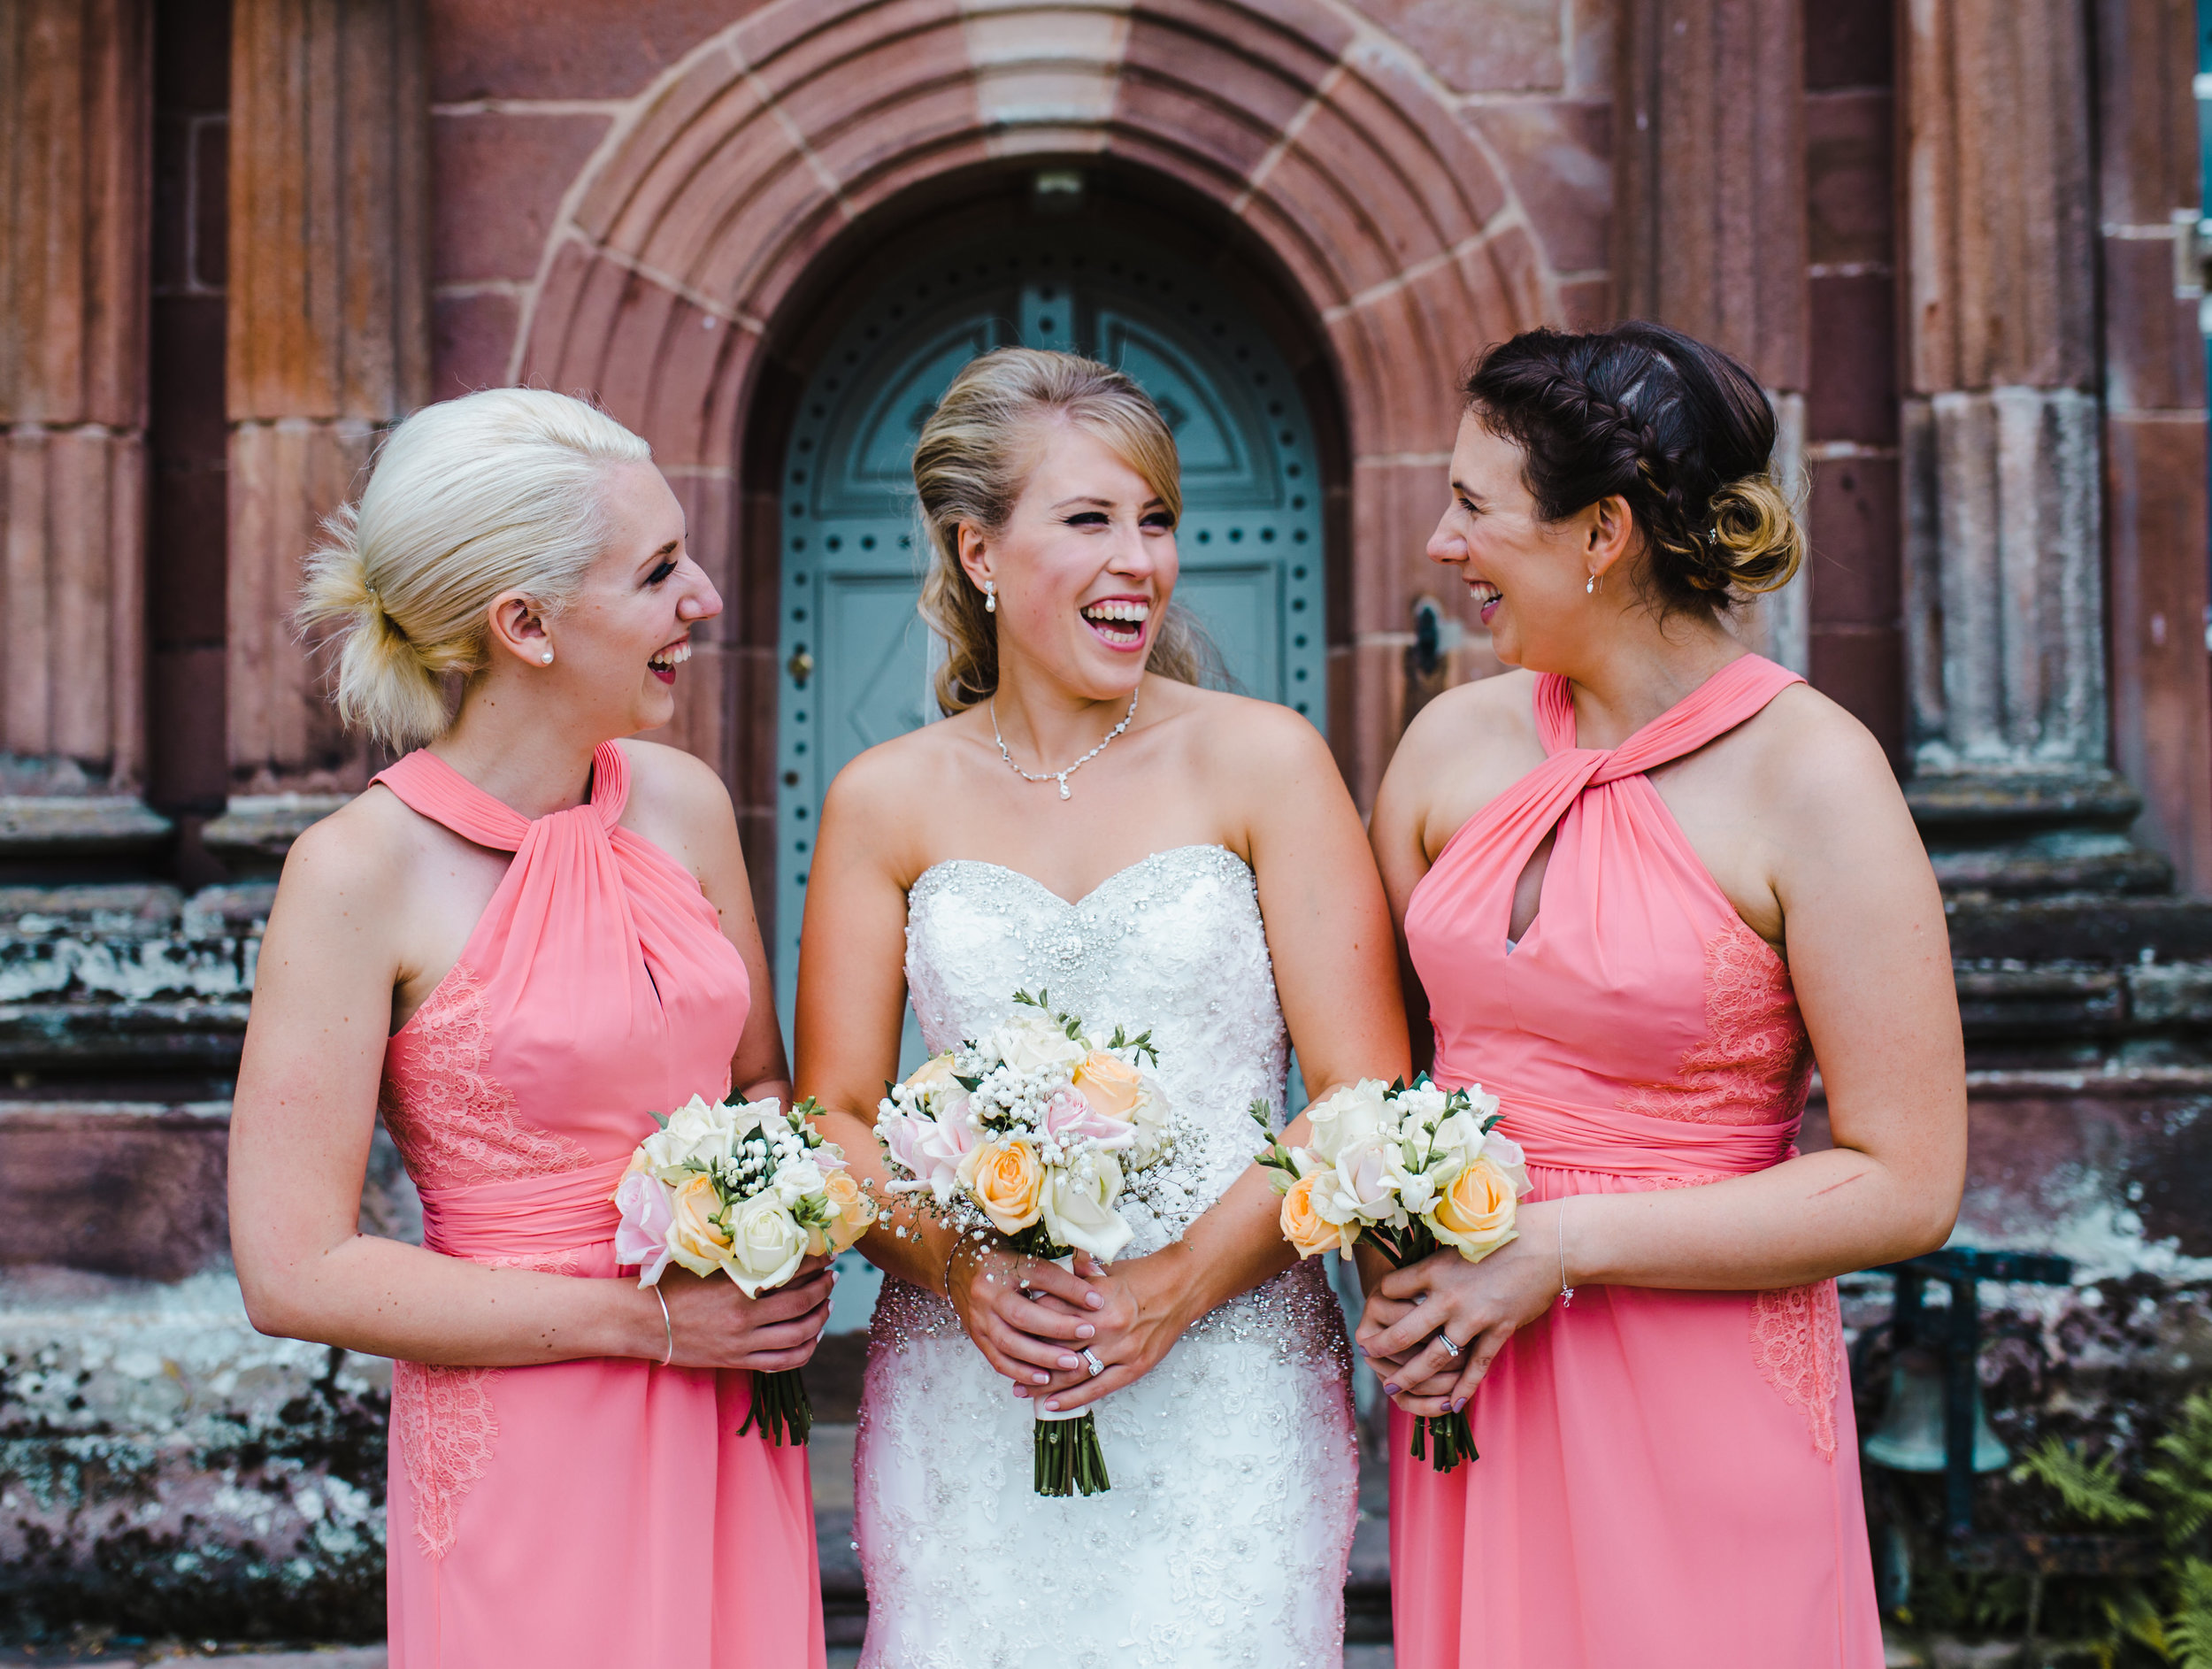 relaxed wedding photography Lancashire - bride and her bridesmaids